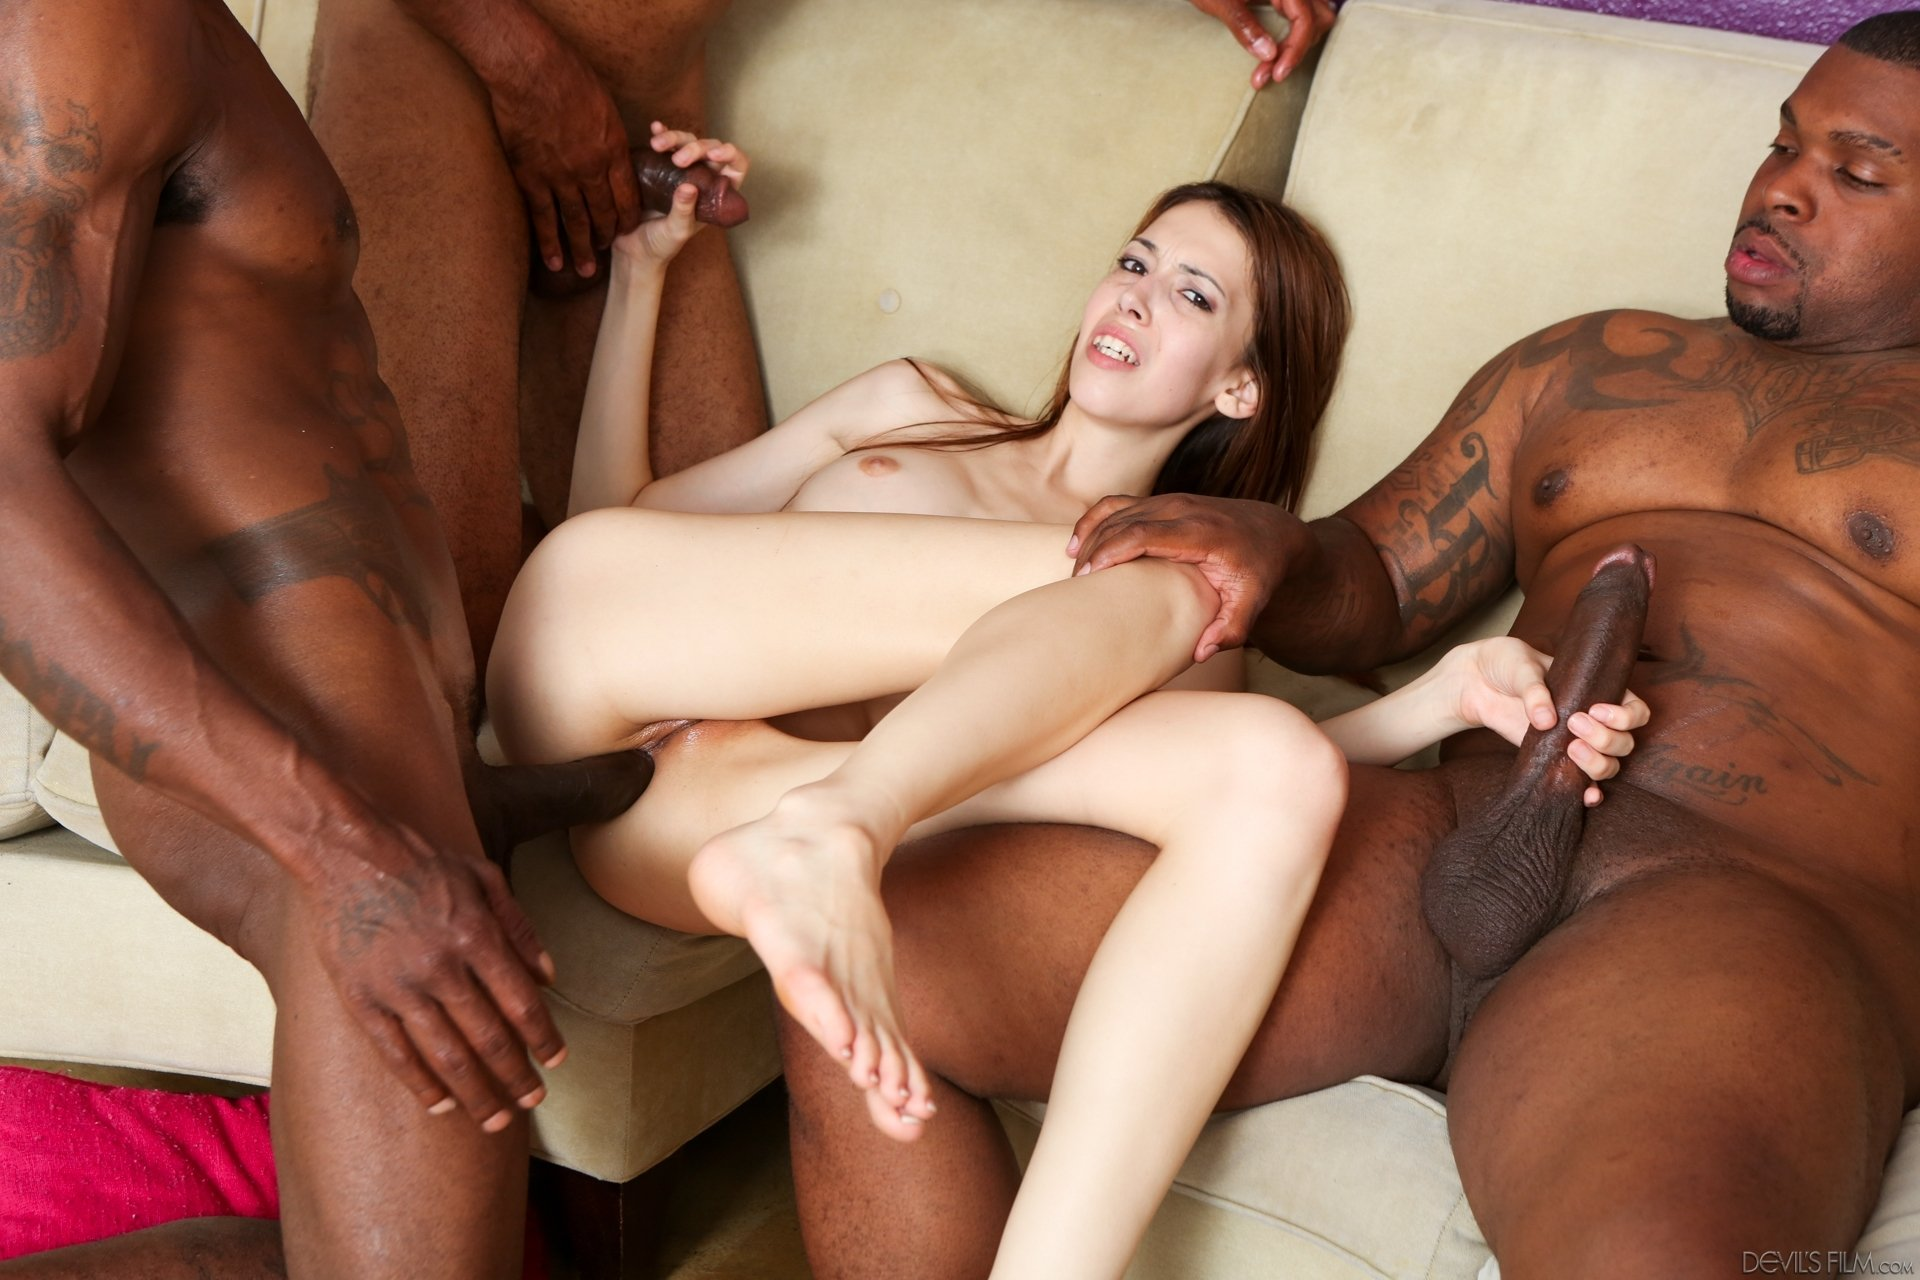 Xxx interracial gangbang trailers, readhead pussy and tits up close